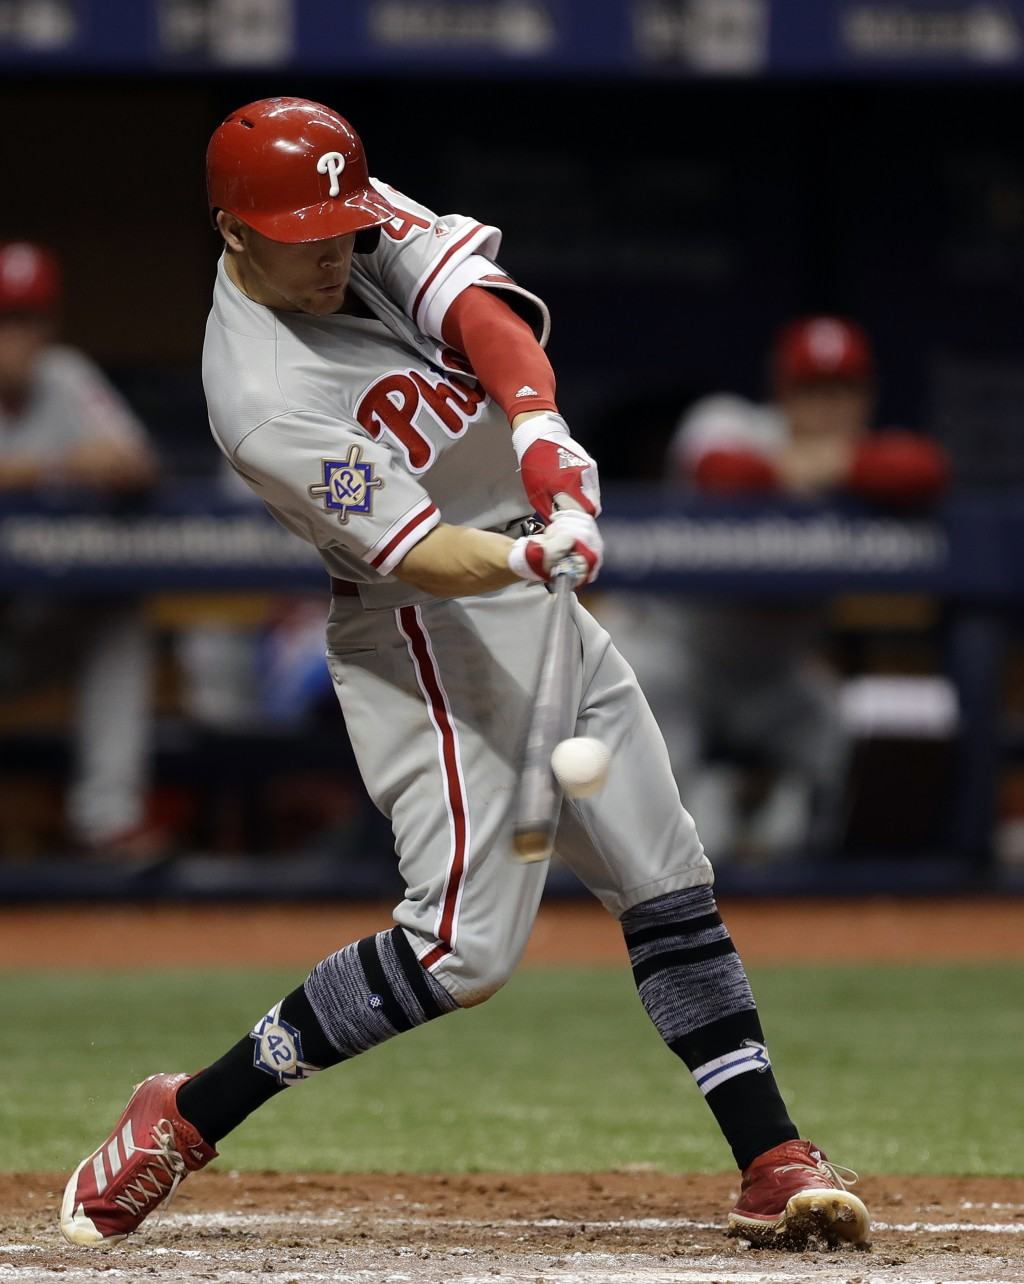 Philadelphia Phillies' Scott Kingery lines a three-run double off Tampa Bay Rays pitcher Ryan Yarbrough during the third inning of a baseball game Sun